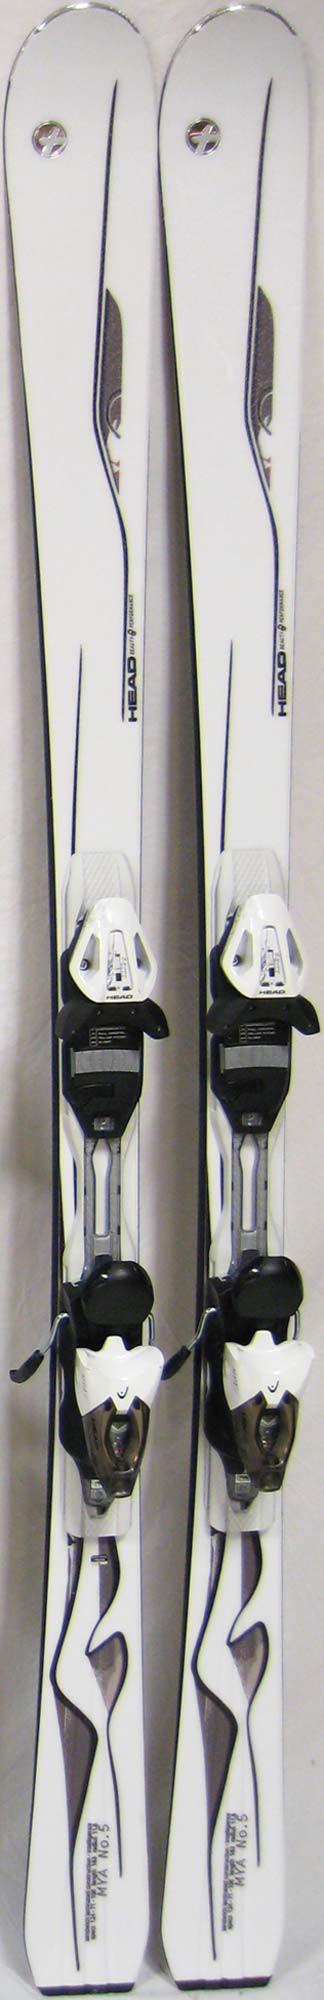 Topsheets of 2012 Head Mya No. 5 PR Skis For Sale